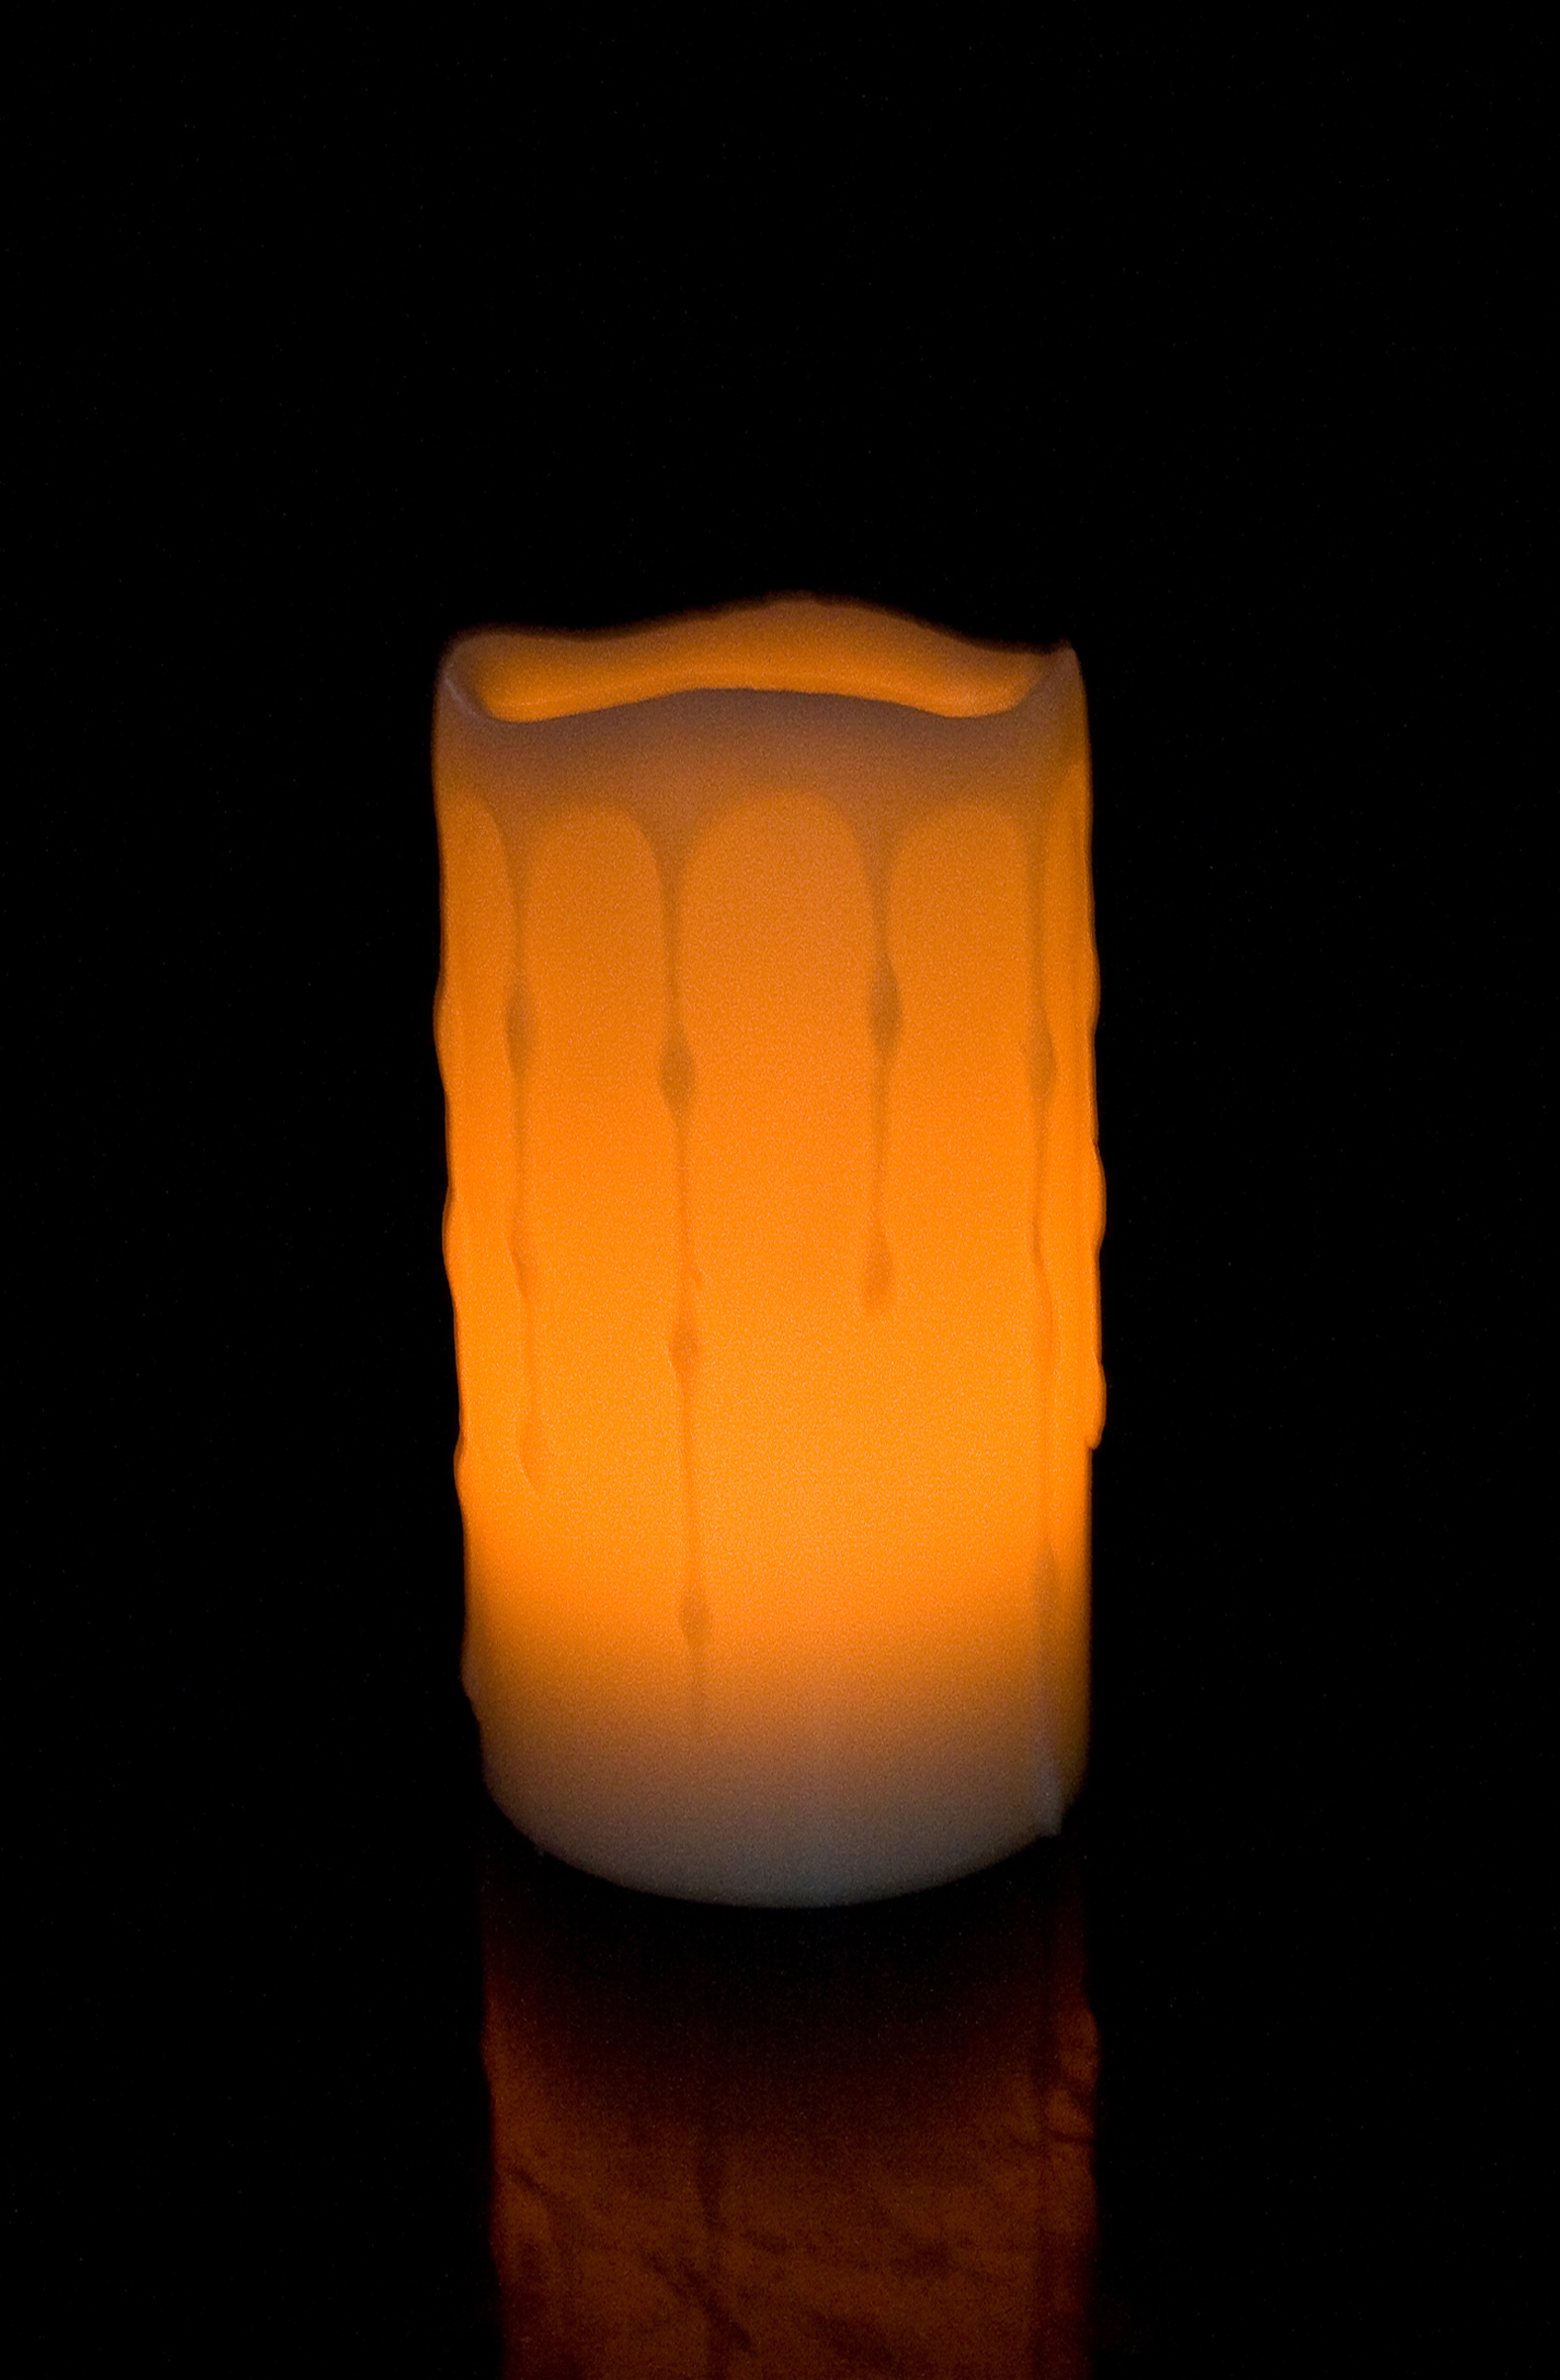 6 Inch Flameless Pillar Candle with Timer - Melted Edge - Yellow